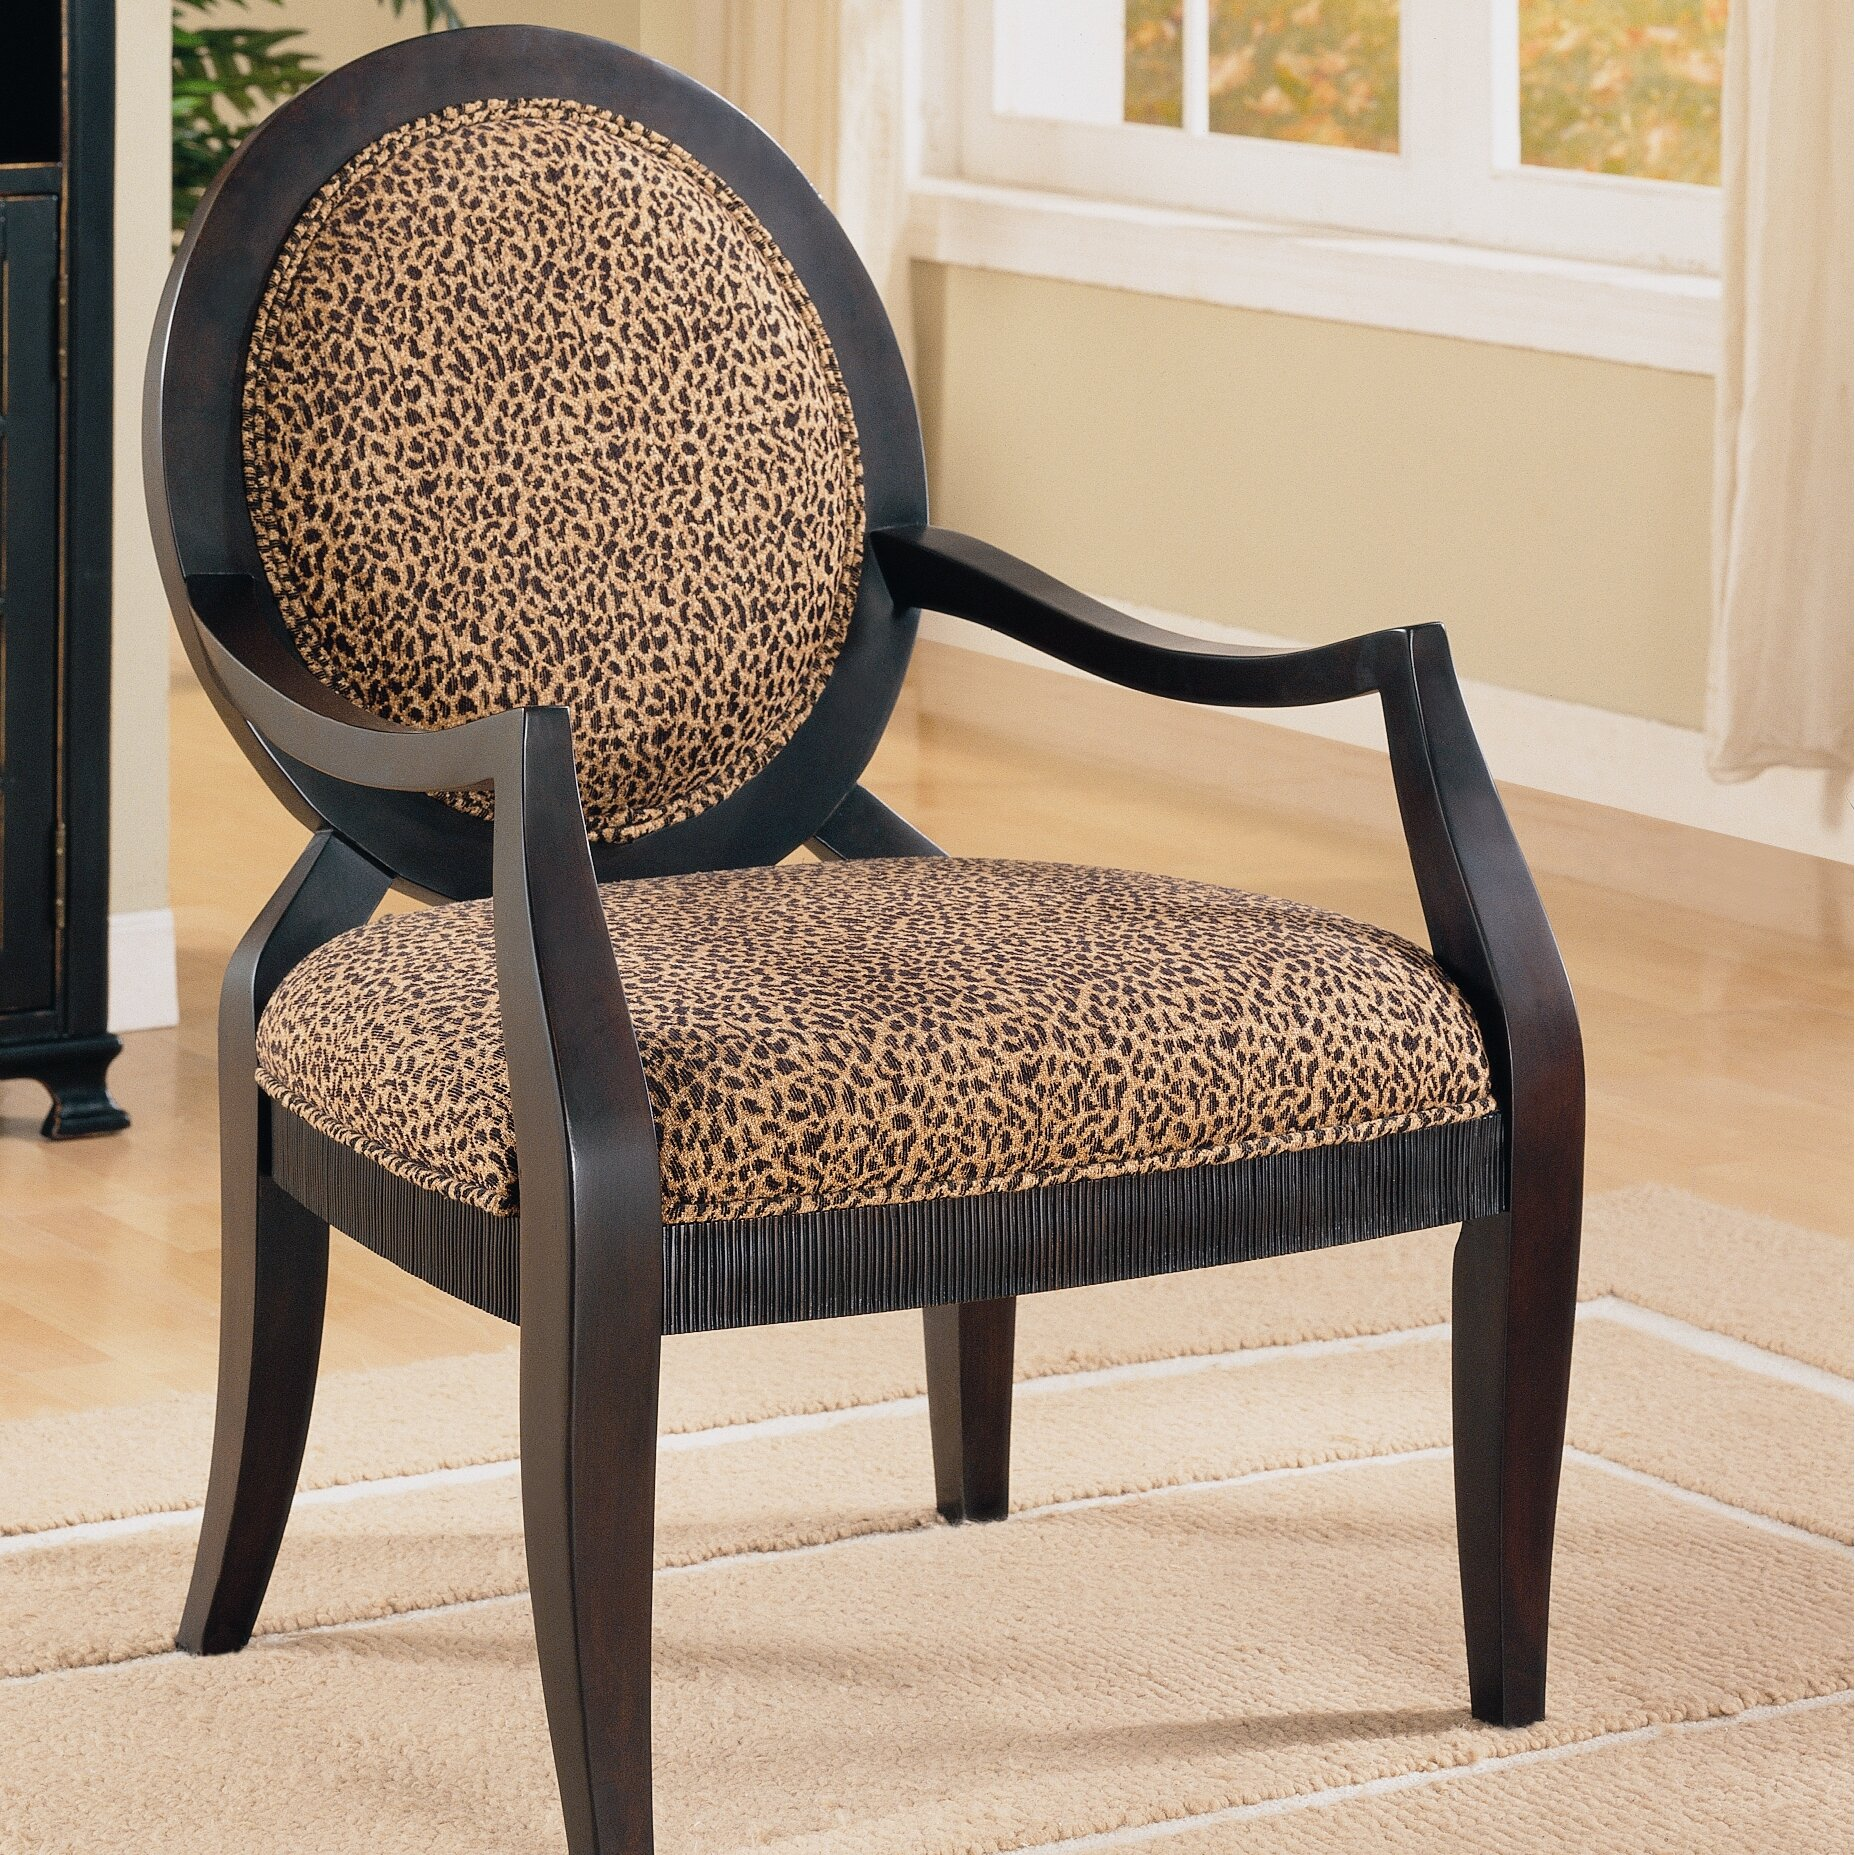 House of Hampton Leopard Print Distressed Fabric Arm Chair ...